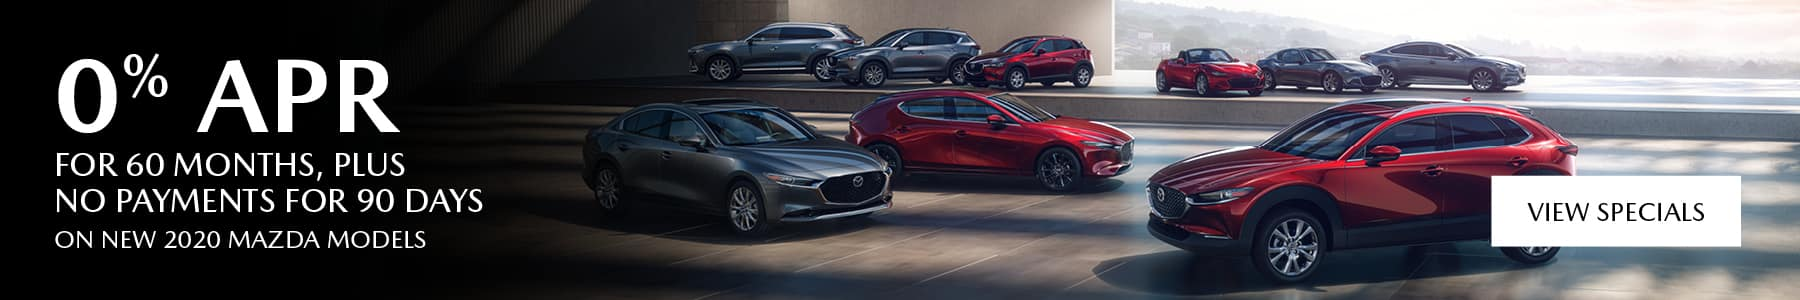 0% APR For 60 months, plus no payments for 90 days on new 2020 Mazda models.